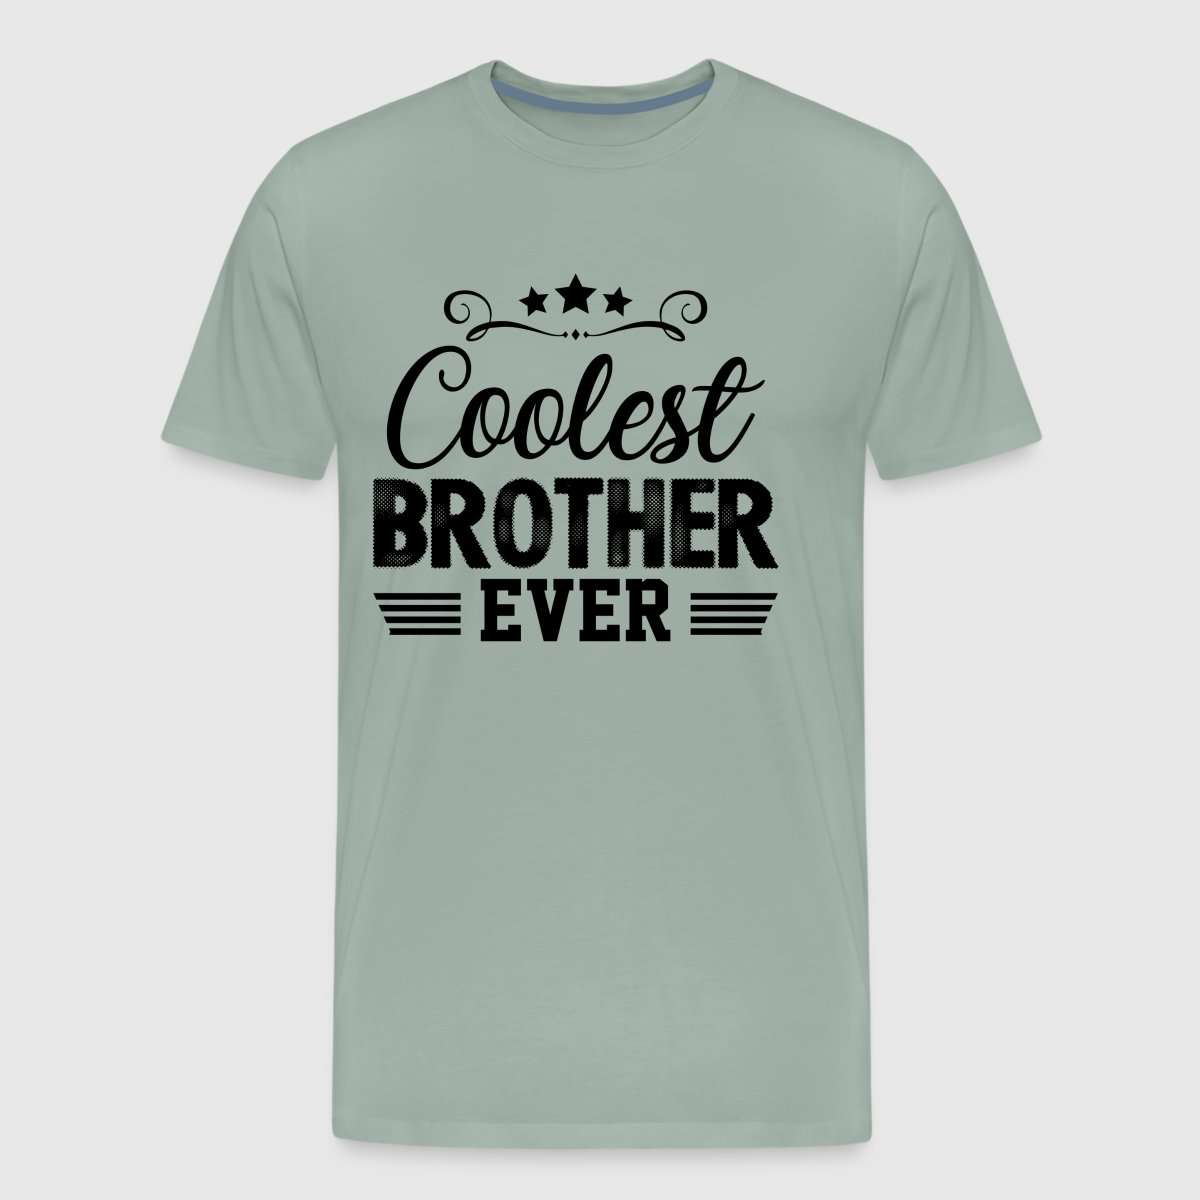 Coolest Tee Shirts Ever Short Circuit Tshirts Shirt Designs Zazzle